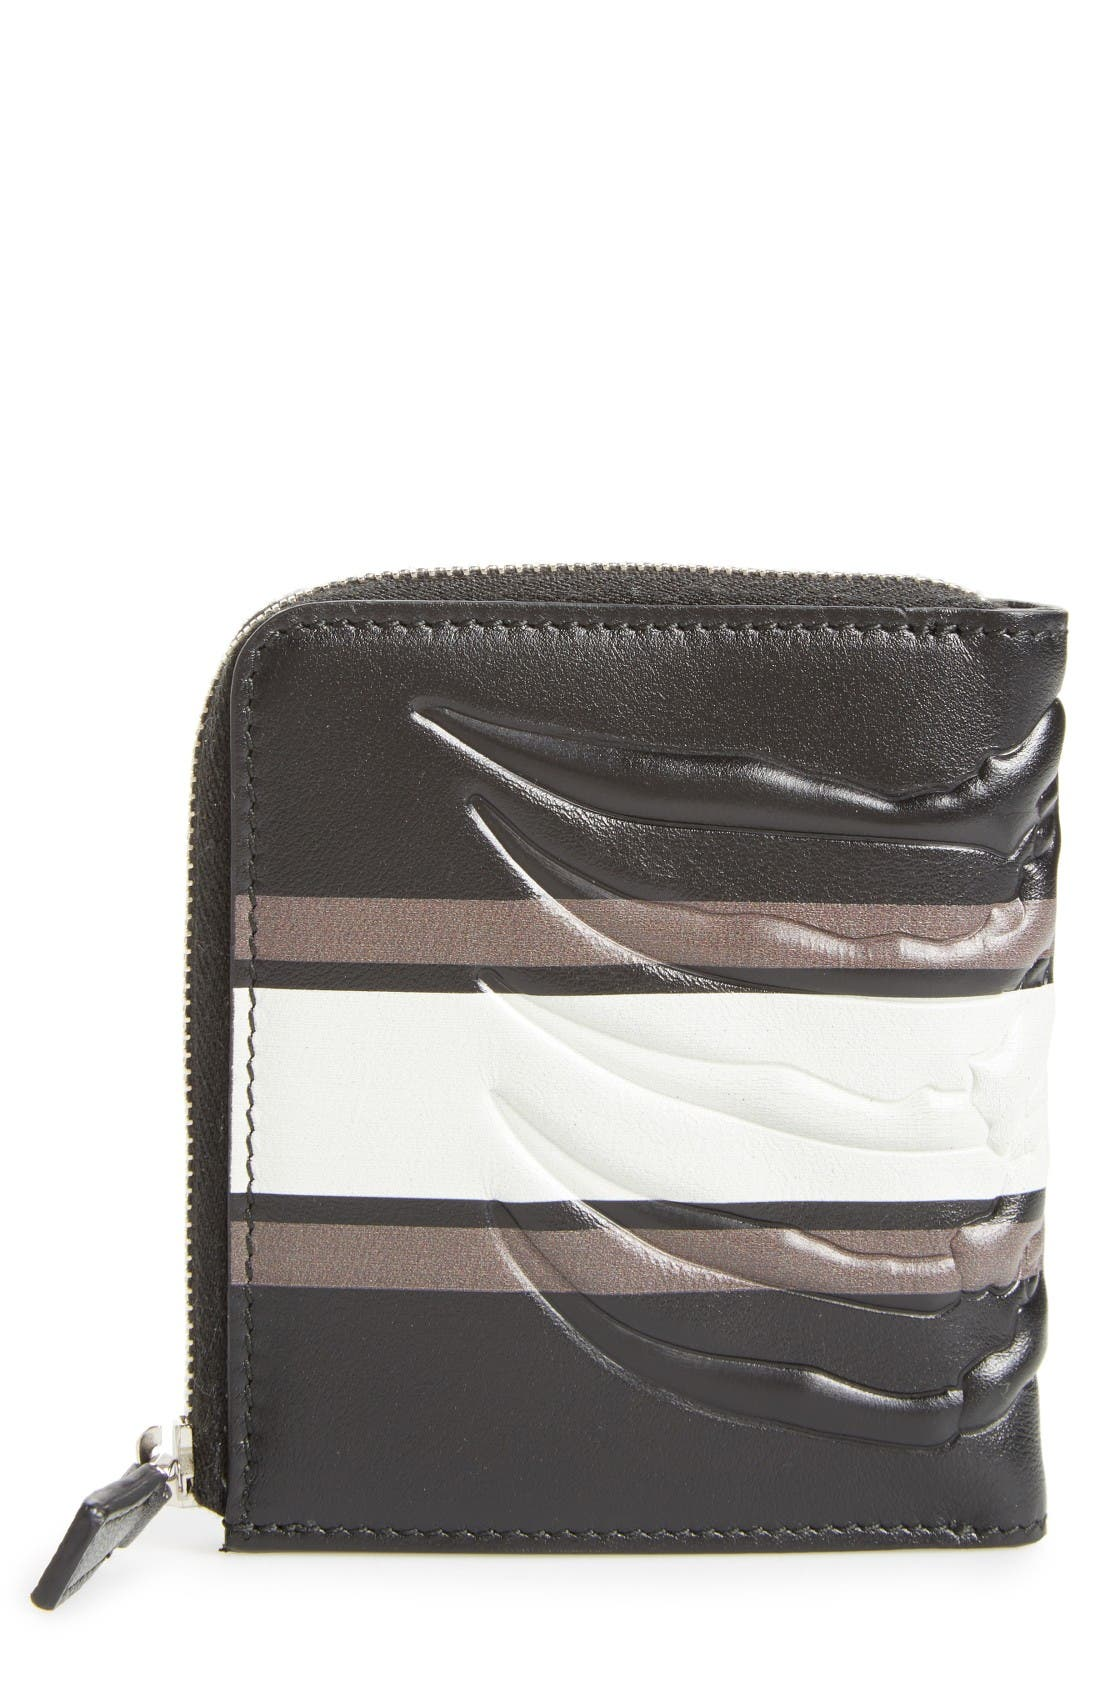 Leather Half Zip Wallet,                             Main thumbnail 1, color,                             Black/ Grey/ Off White